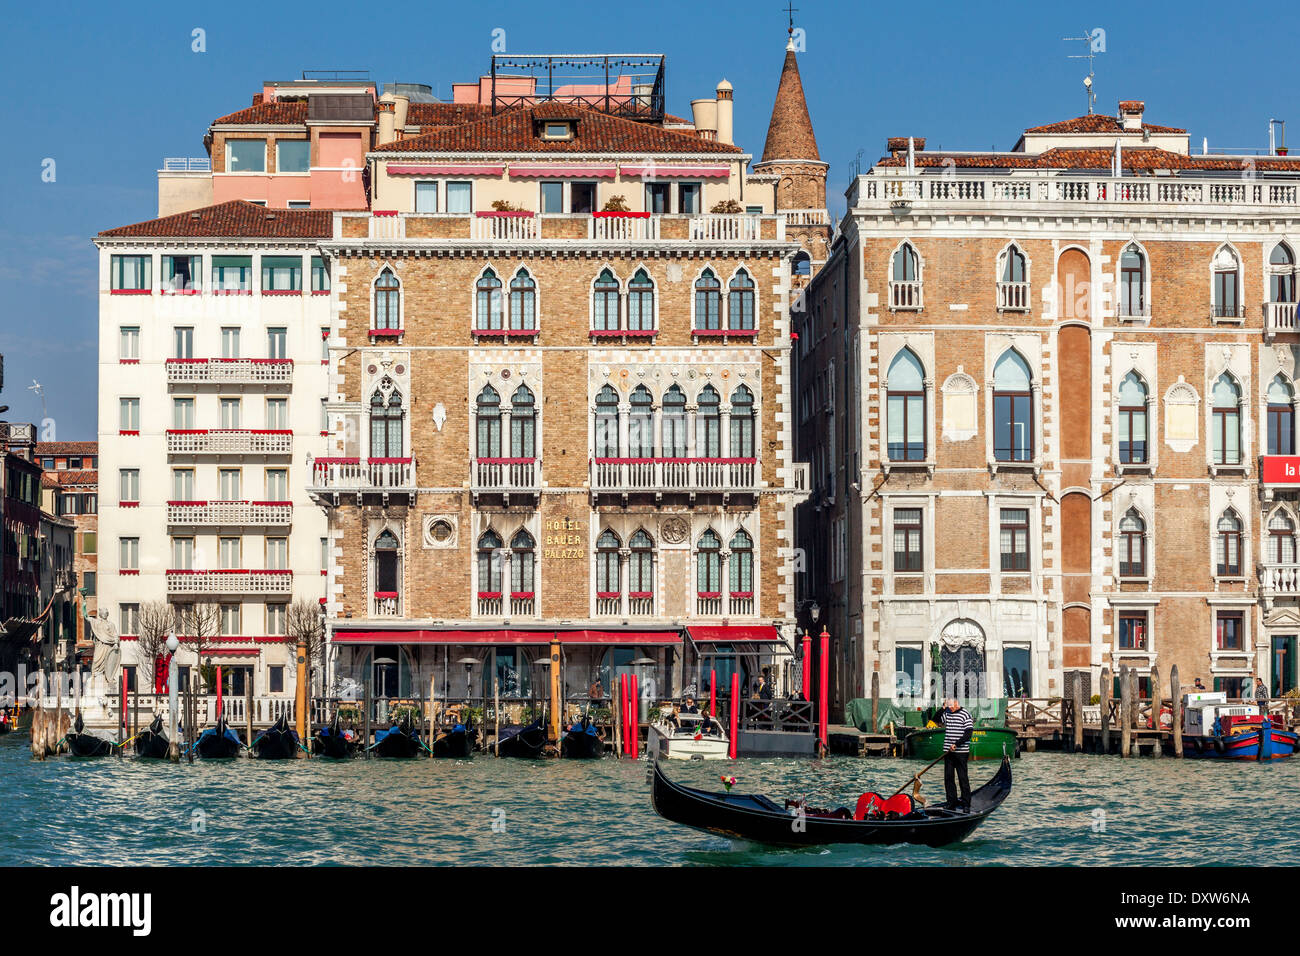 Hotel Bauer Palazzo The Grand Canal Venice Italy Stock Photo